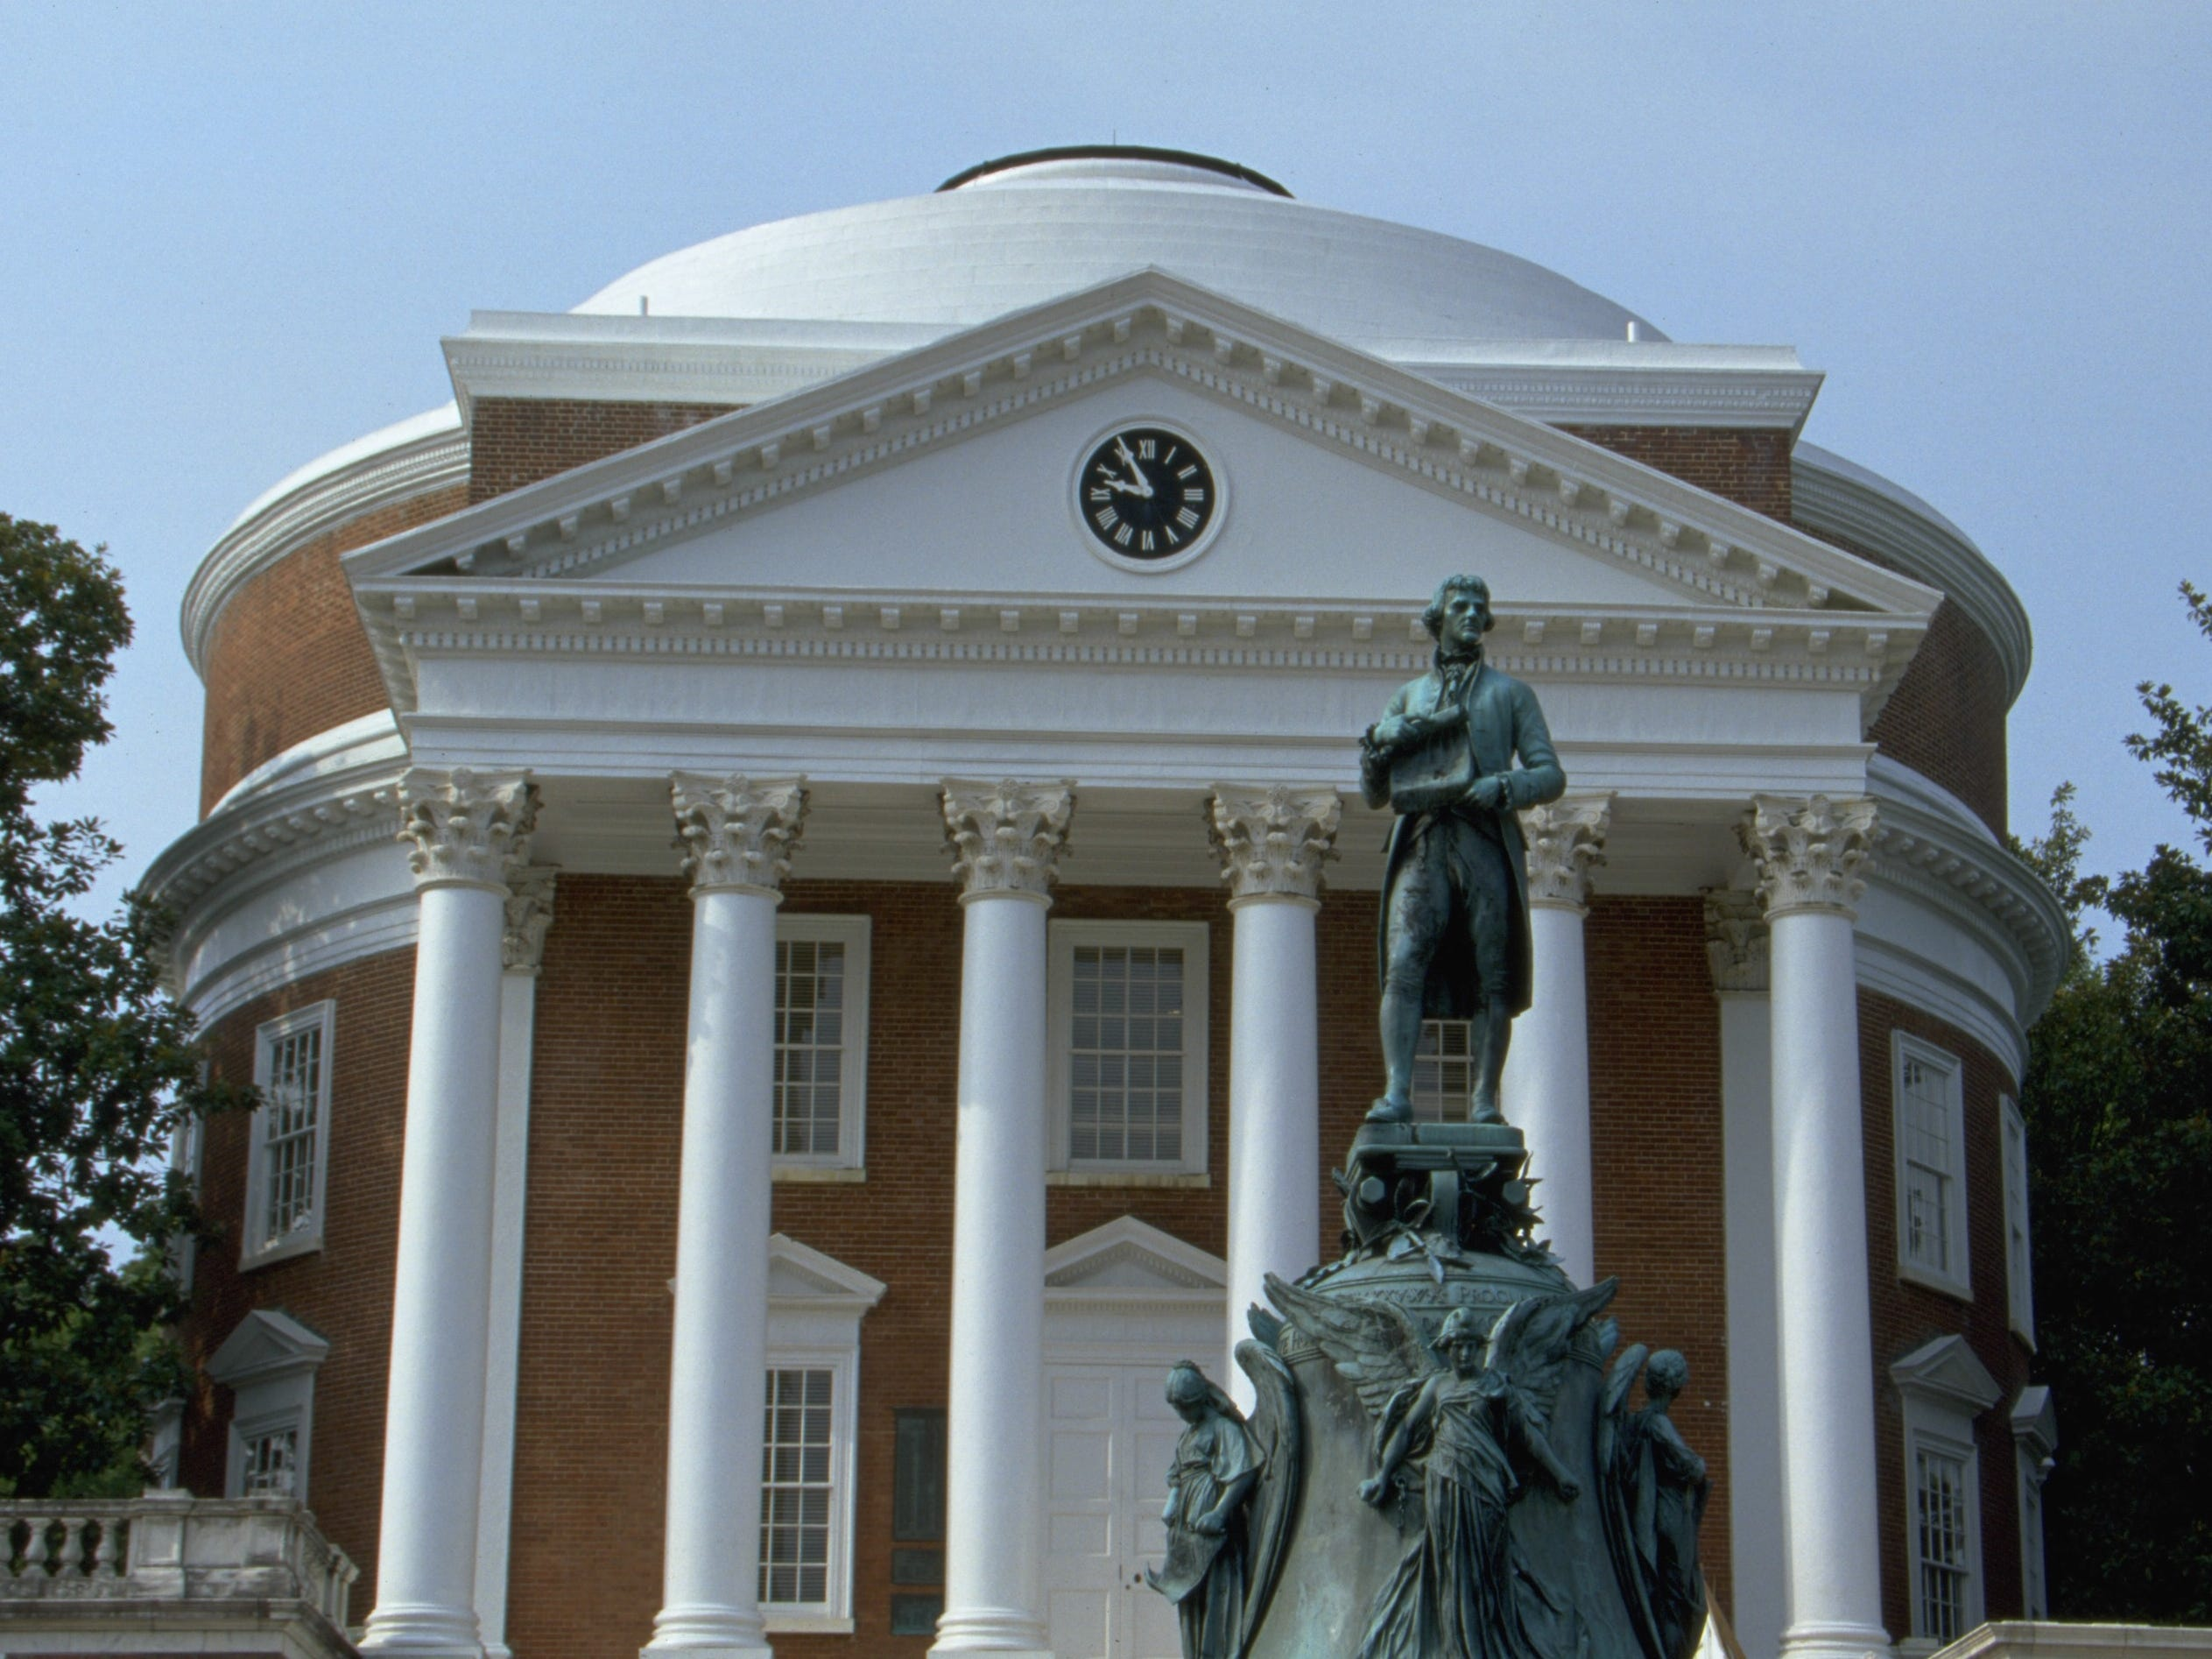 Virginia: The Rotunda, a half-scale interpretation of the Pantheon in Rome, is a signature landmark of the University of Virginia, and its Dome Room originally housed the University library.